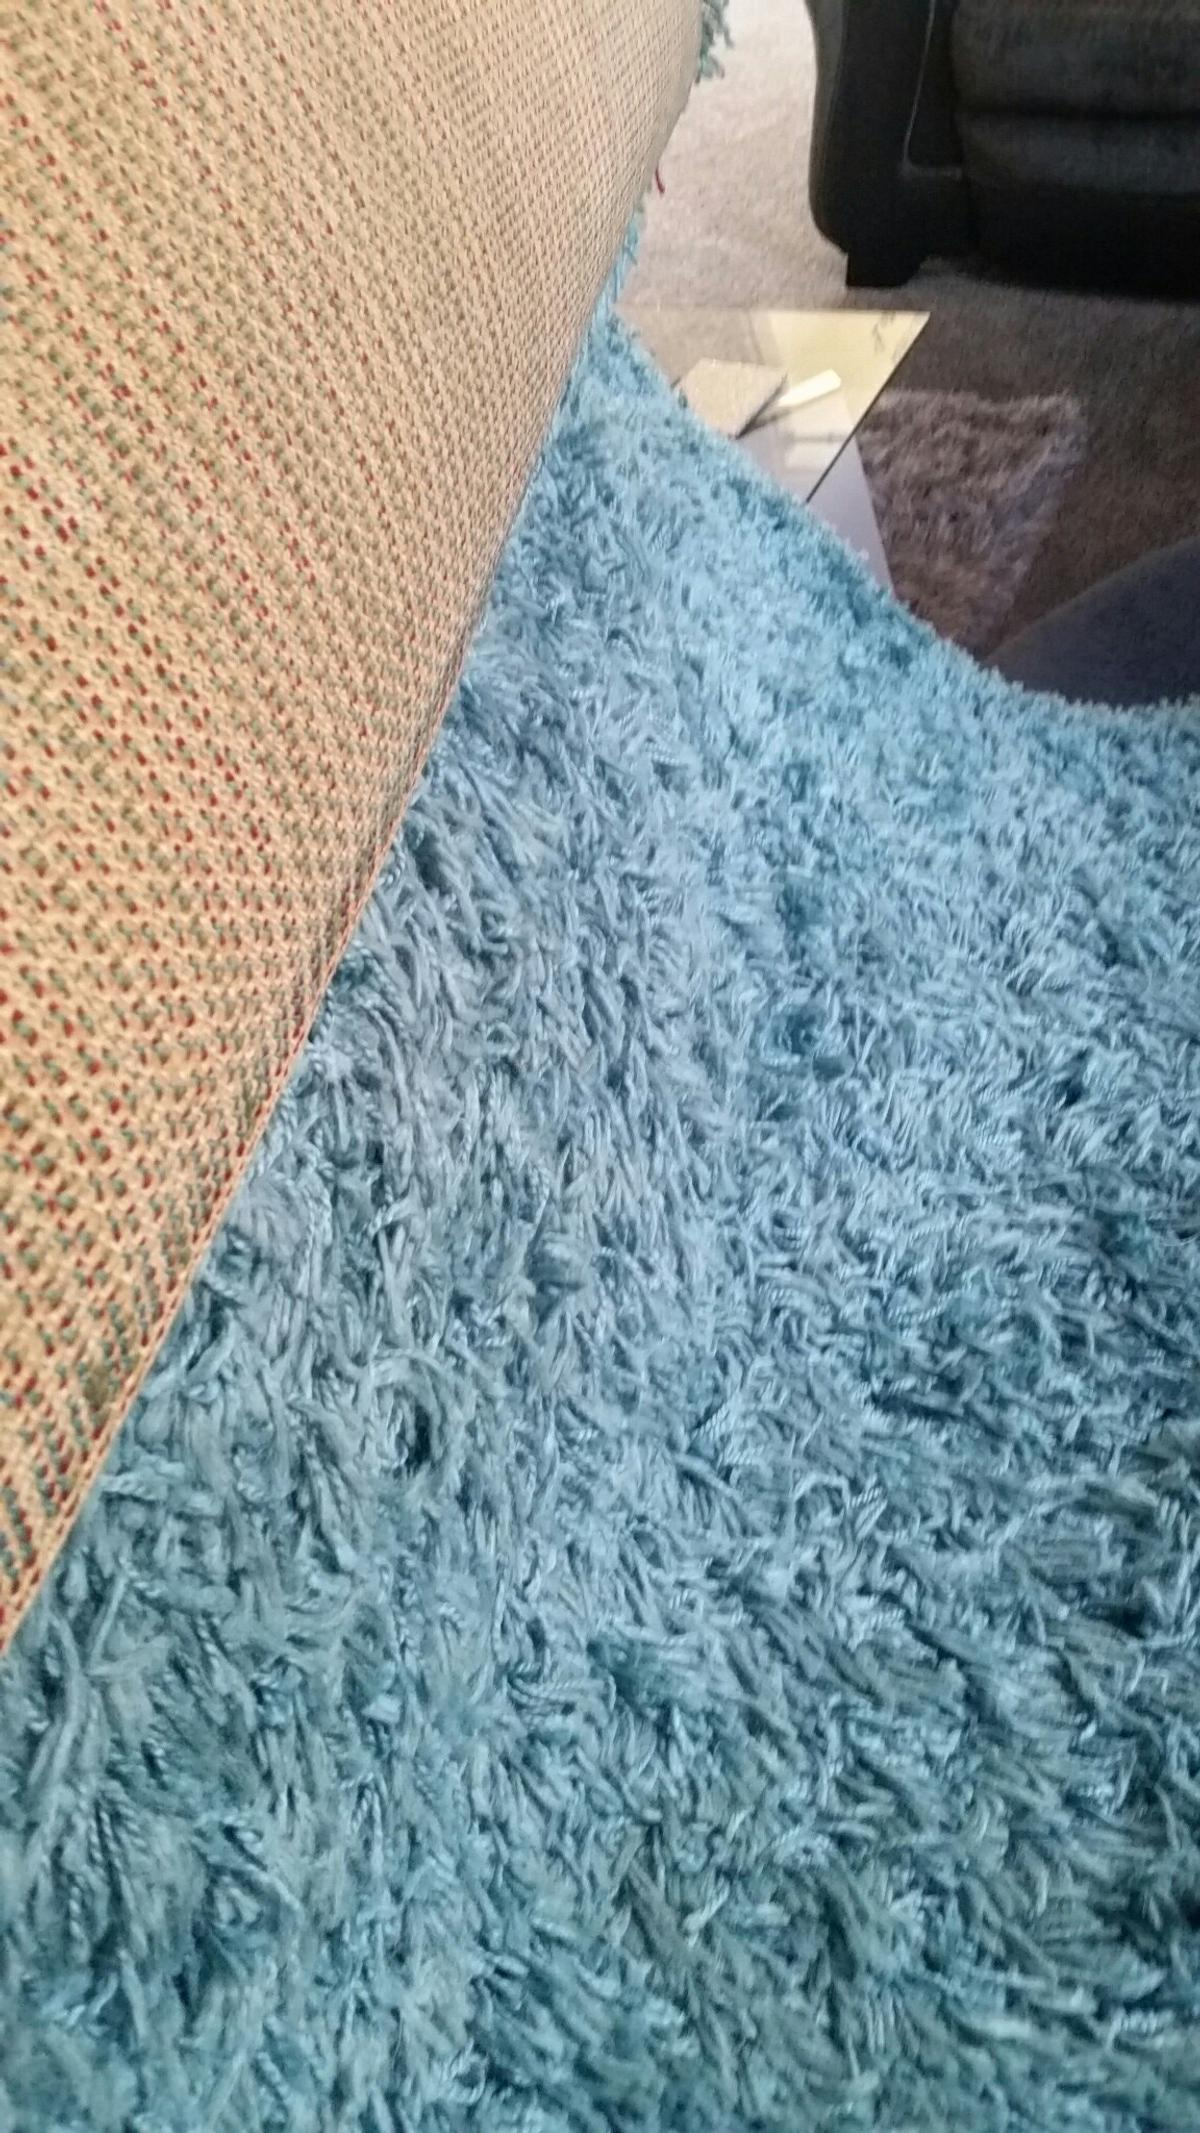 Teal Next Rug For In Wv16